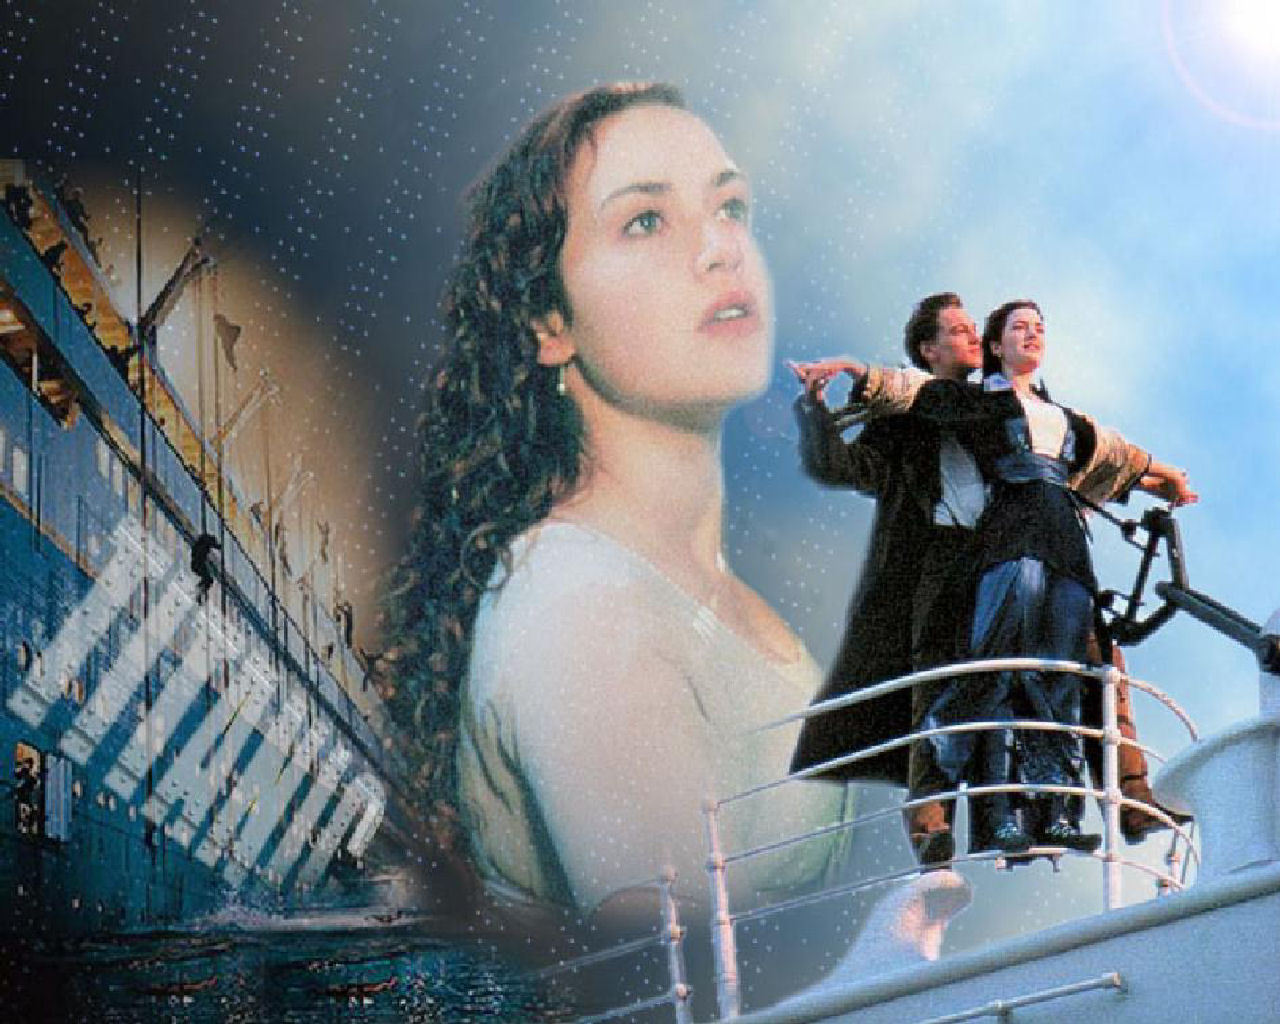 Titanic (Full Movie) 1997 English HD - YouTube